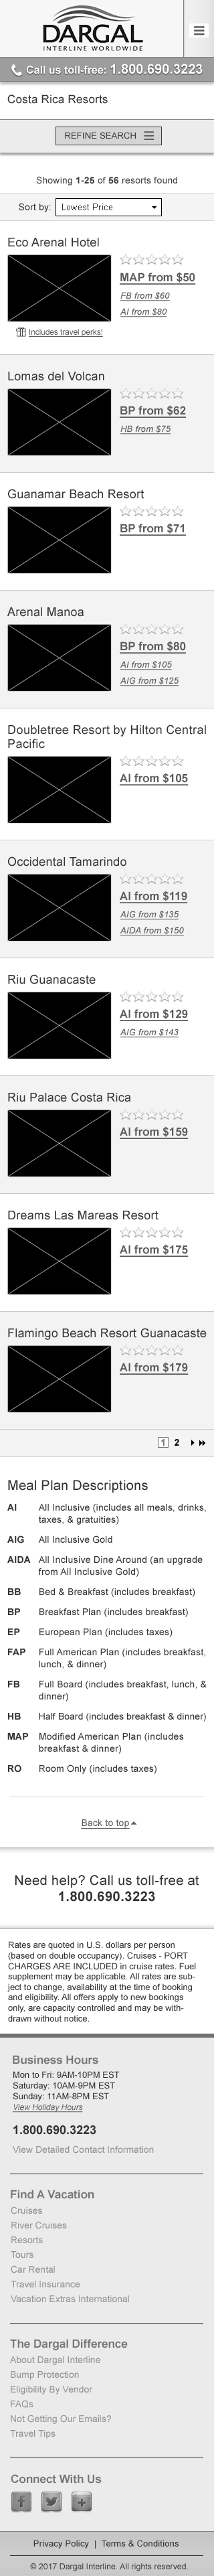 UX Design - responsive Resort Search Results